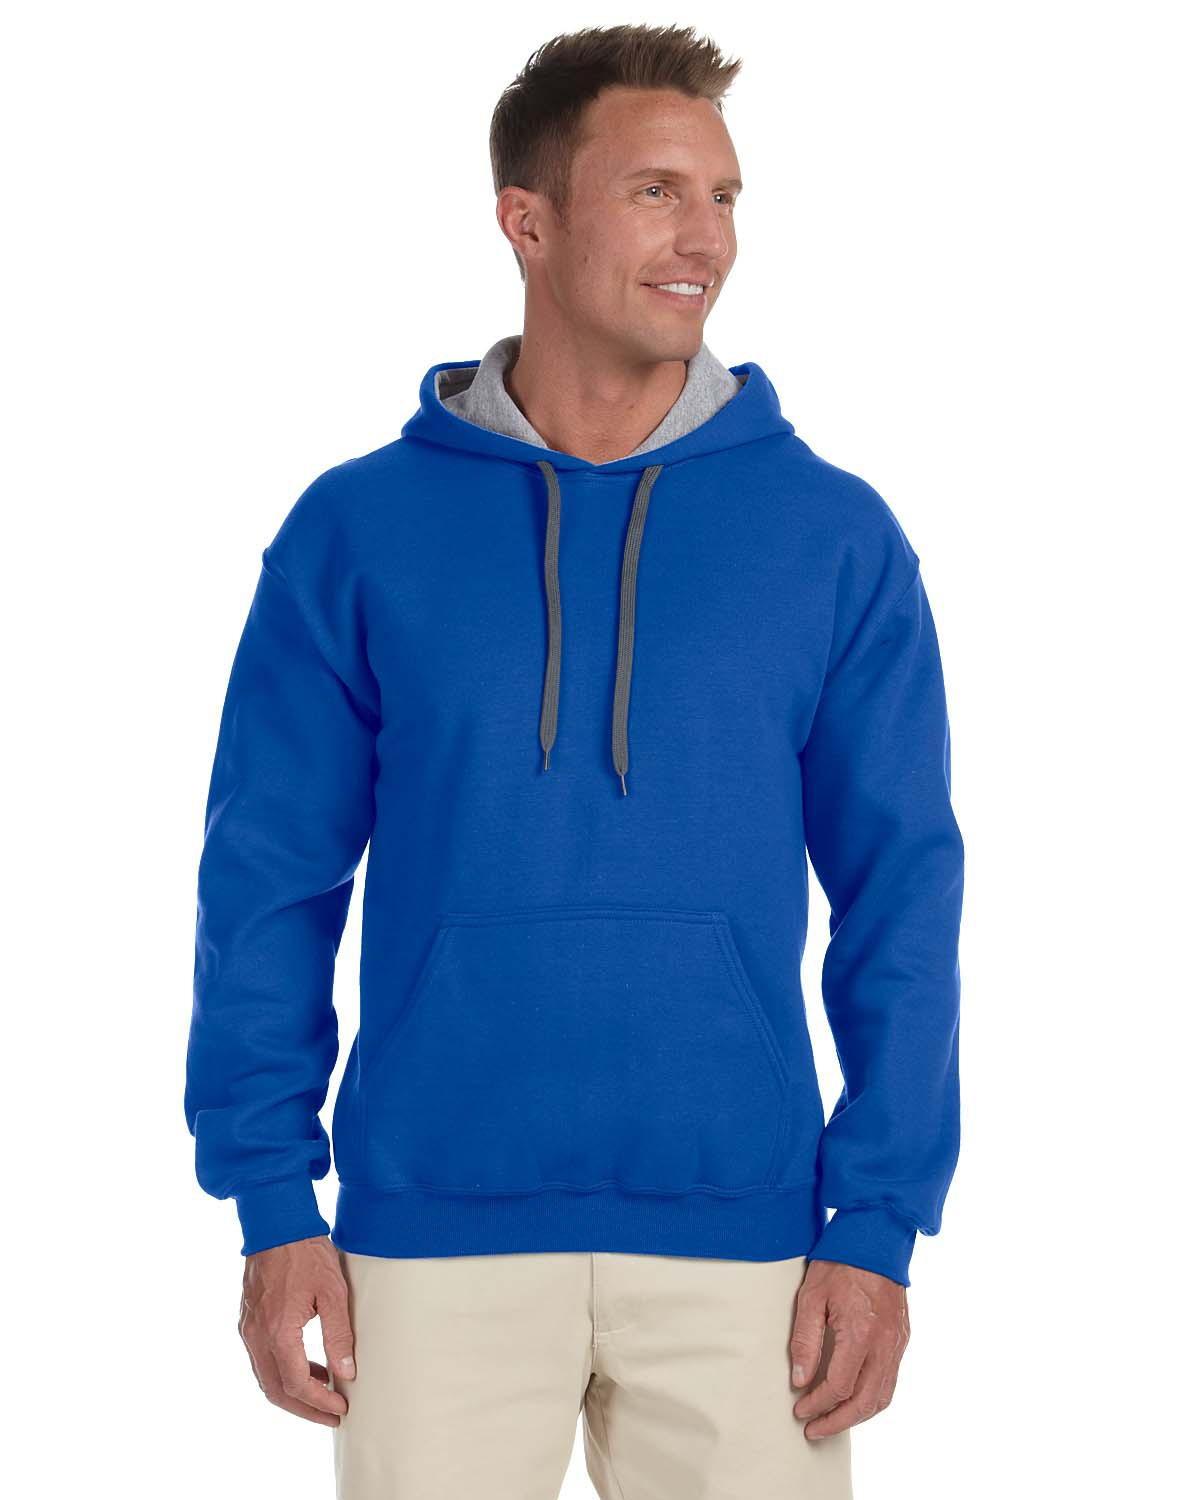 Gildan 185C00 - Heavy Blend Hooded Sweatshirt with Contrast-...